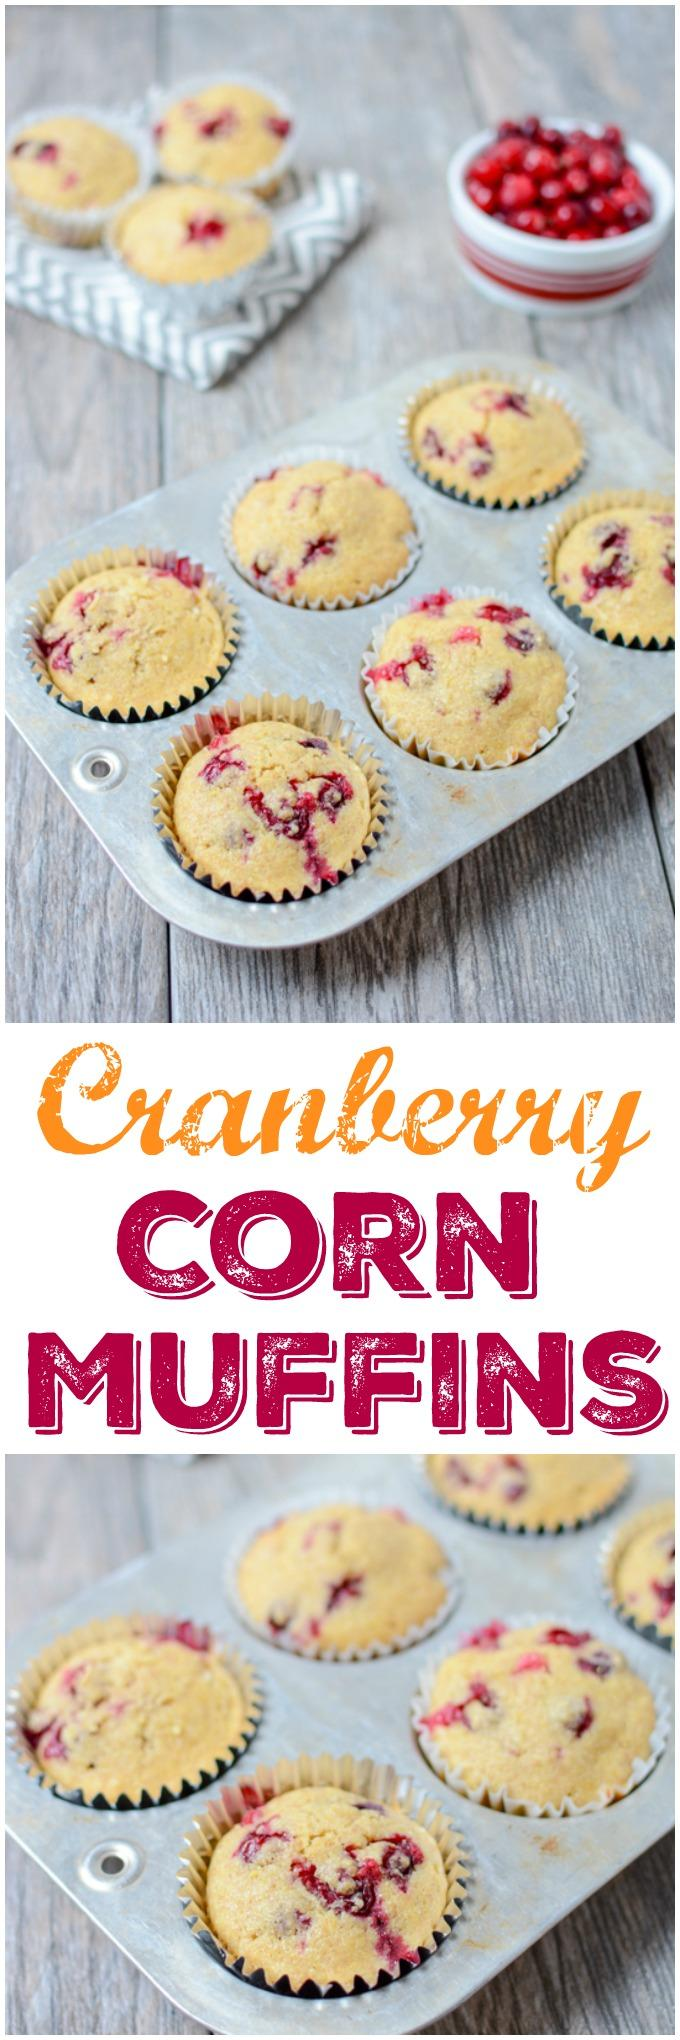 These Cranberry Corn Muffins are lightly sweetened and bursting with tart fresh cranberries. They make the perfect dinner side dish. Serve them with a hearty chili or make a batch for your holiday dinner.